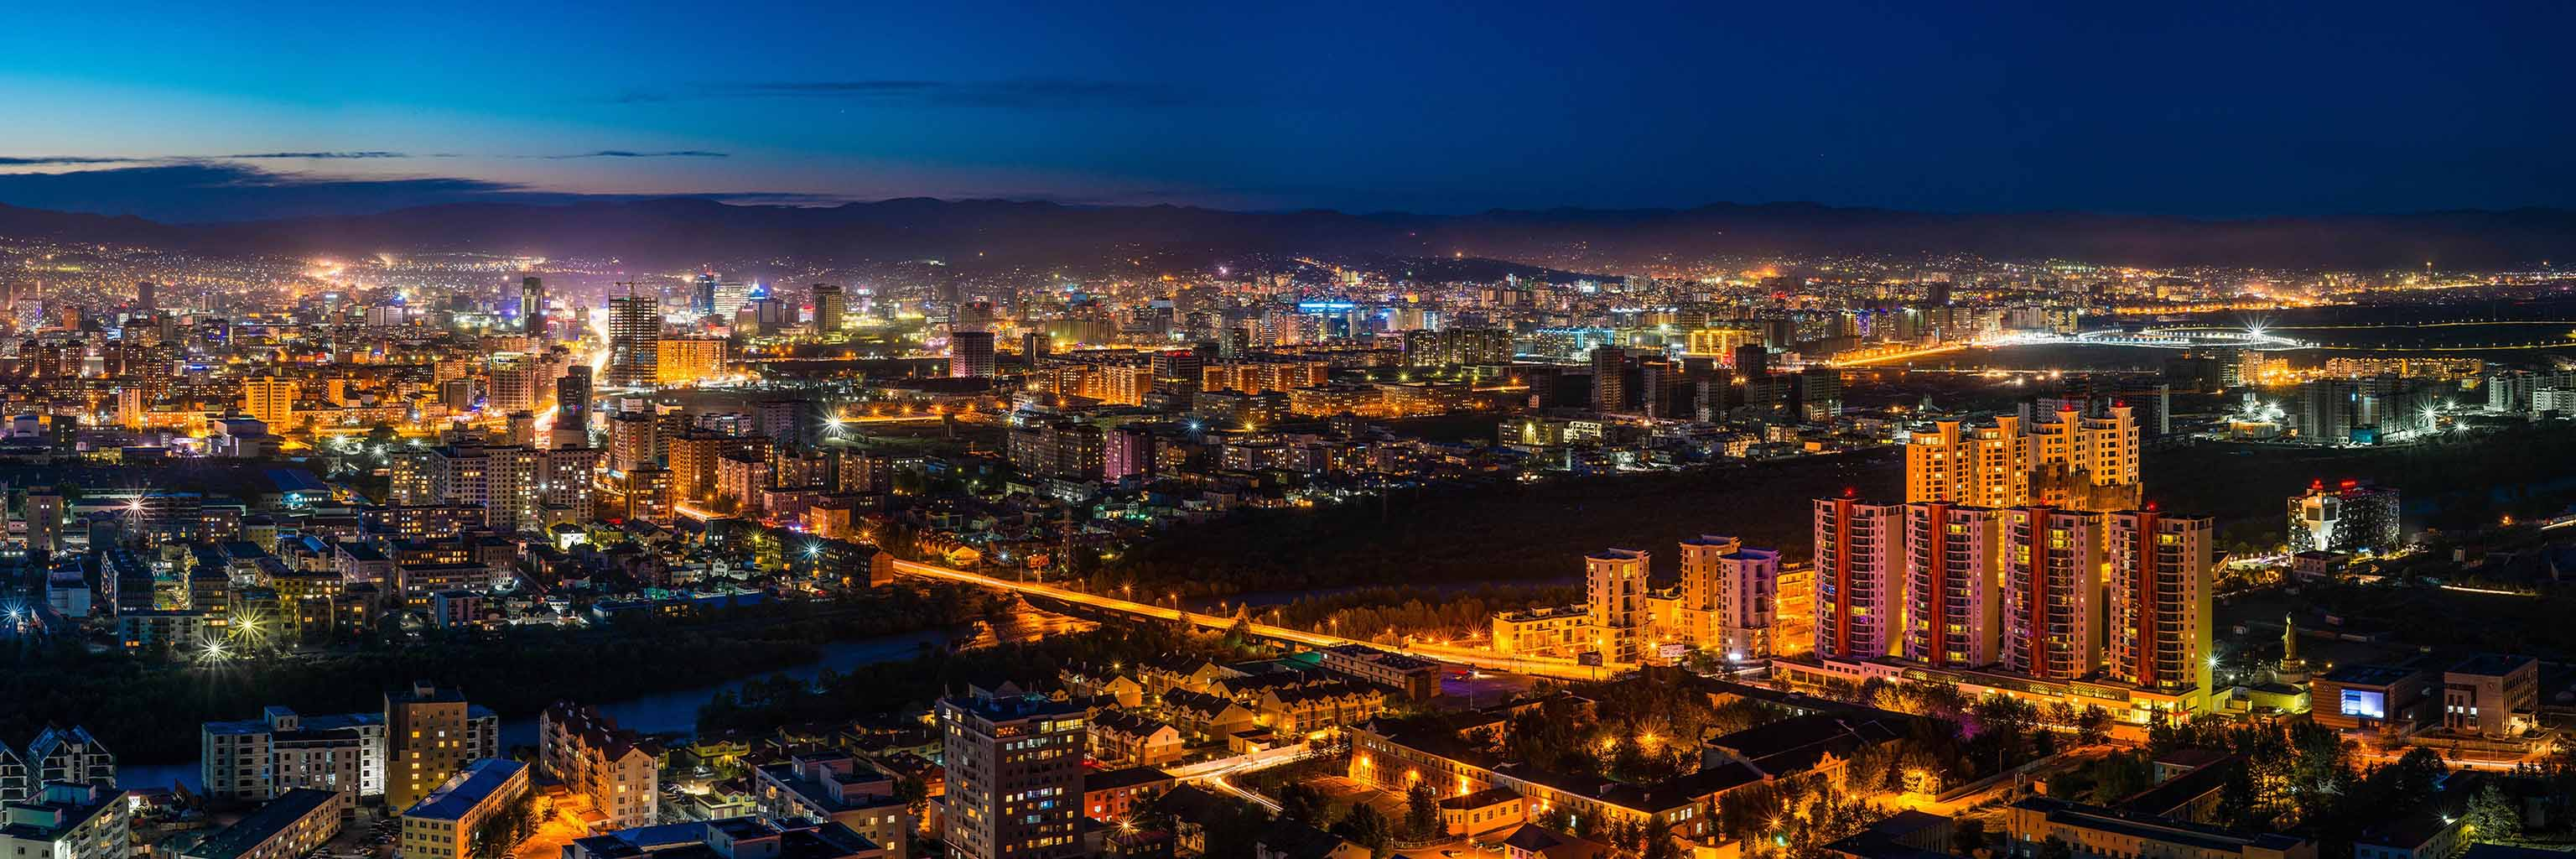 Night view of a city in Mongolia